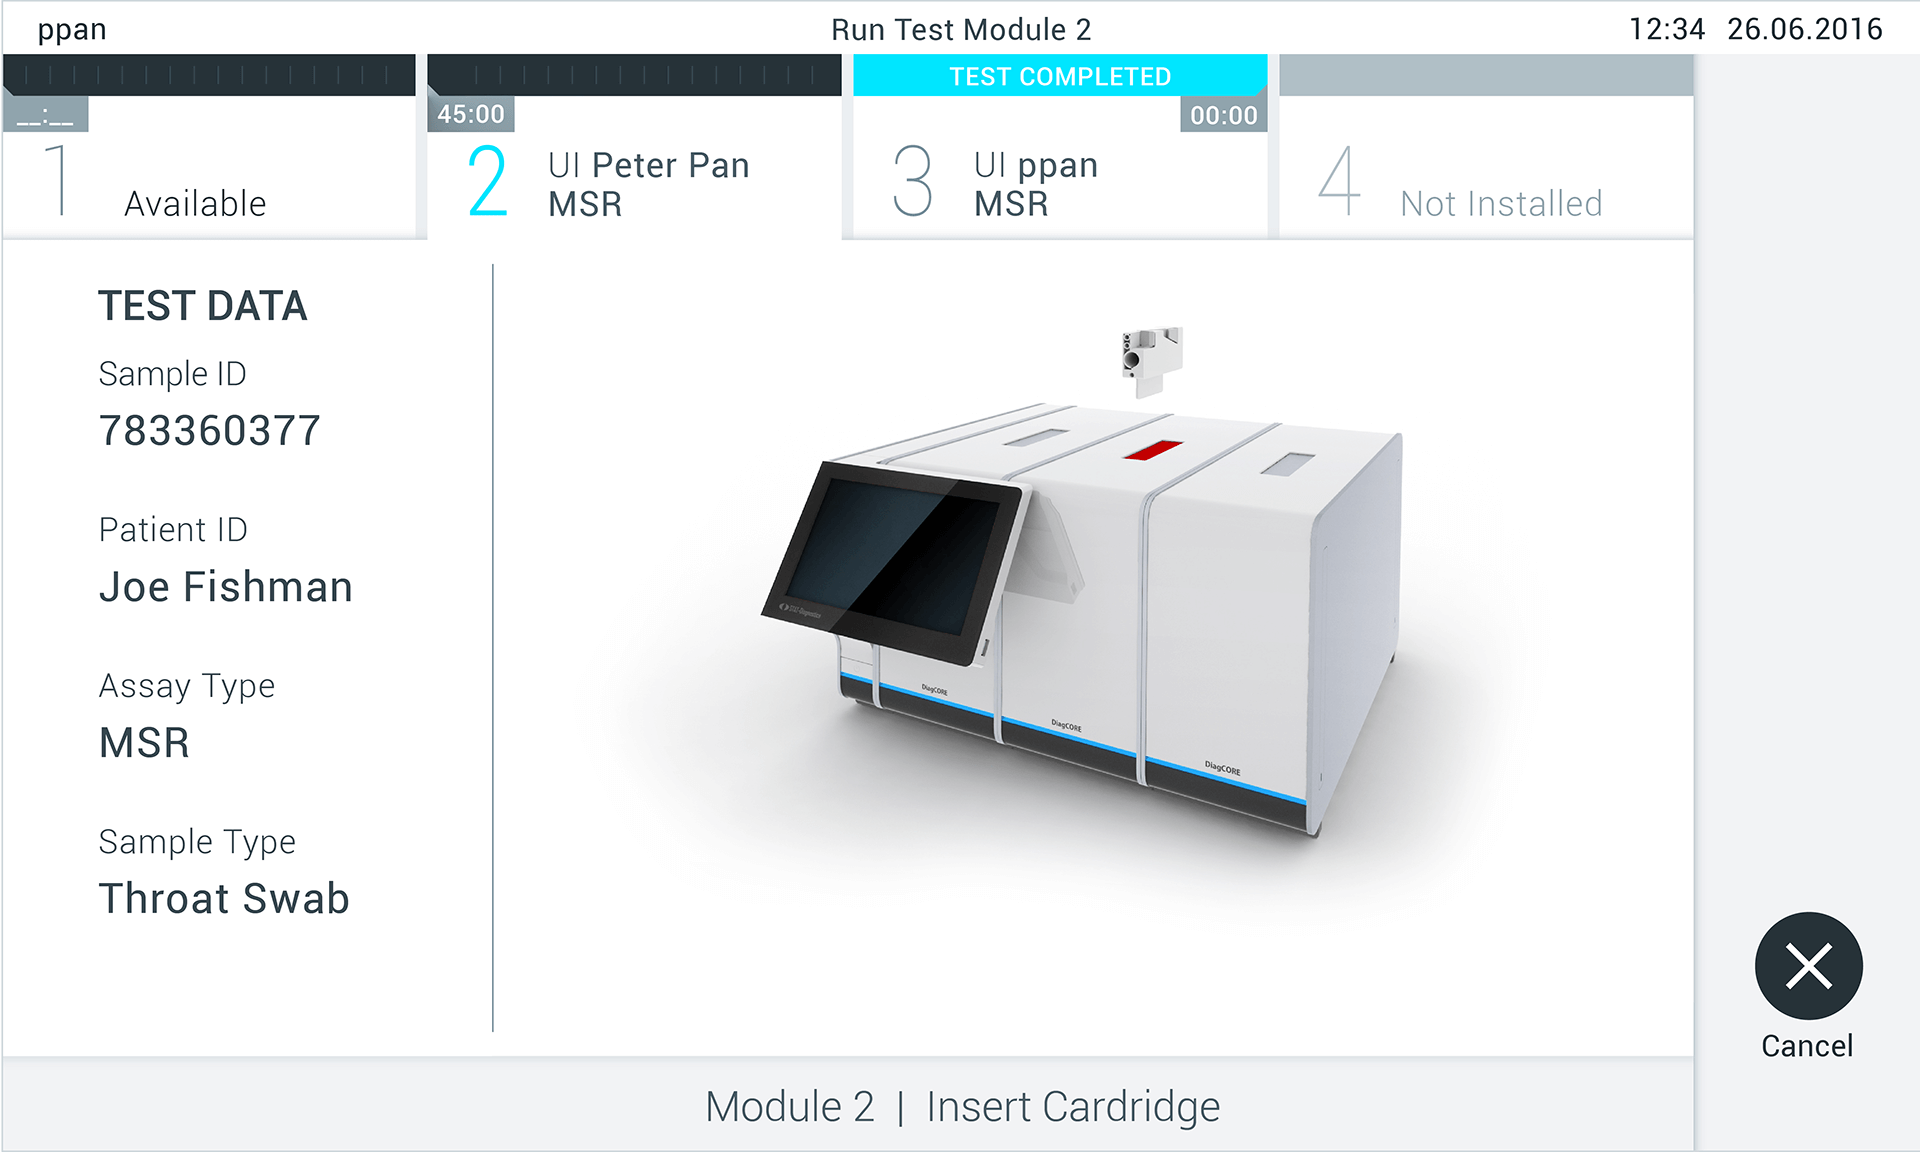 Representation of the user interface of Qiagen's QIAstat Analyzer, which invites the user to put the sample into the device.